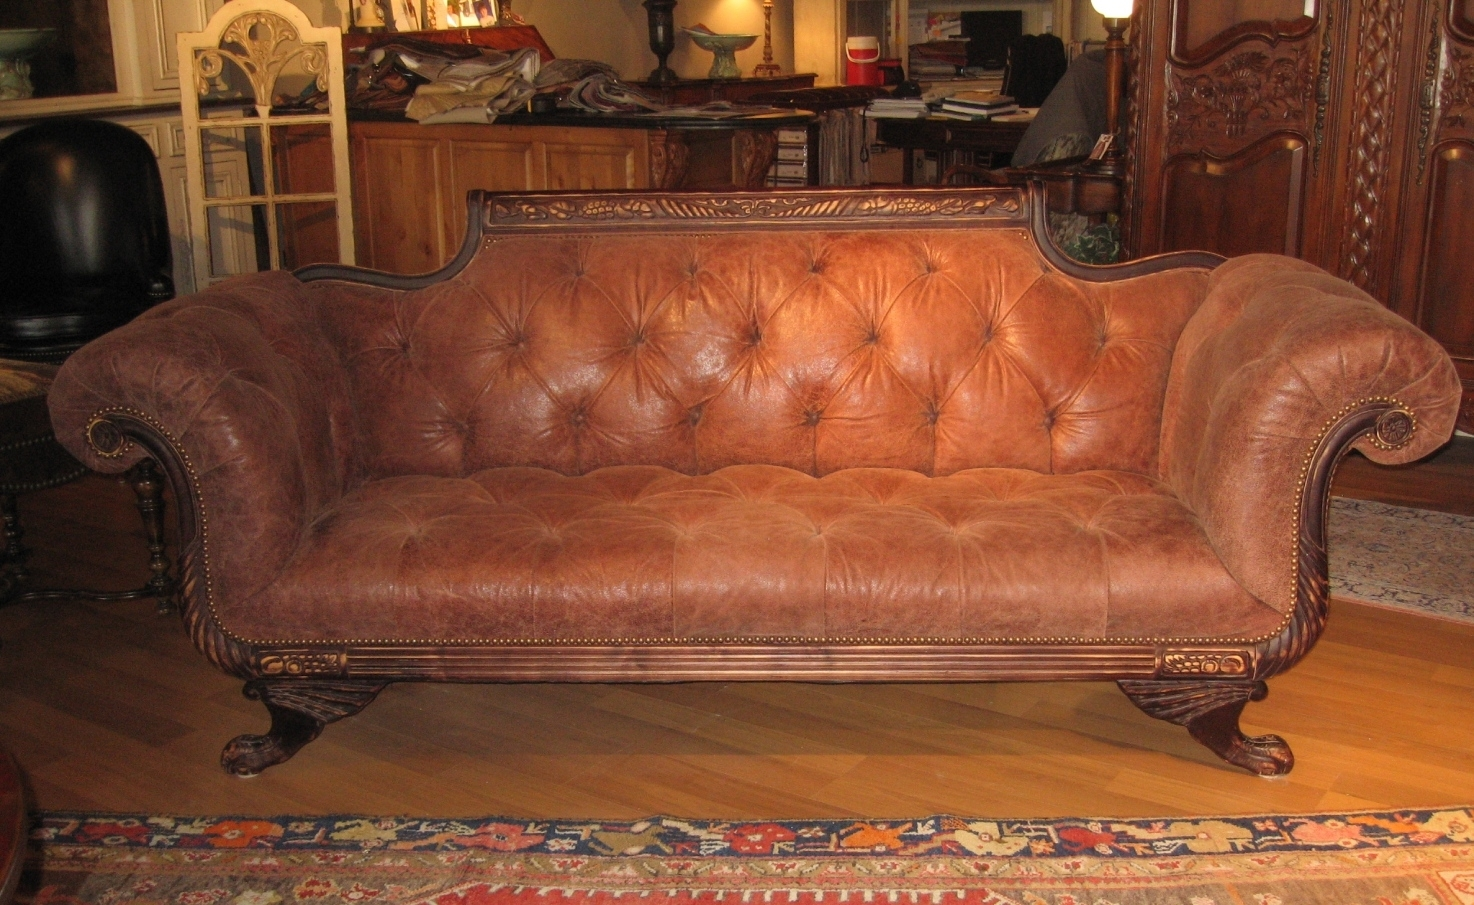 Duncan Phyfe Sofa Tufted High Quality Leather Tufted And Sanded Leather Sofa